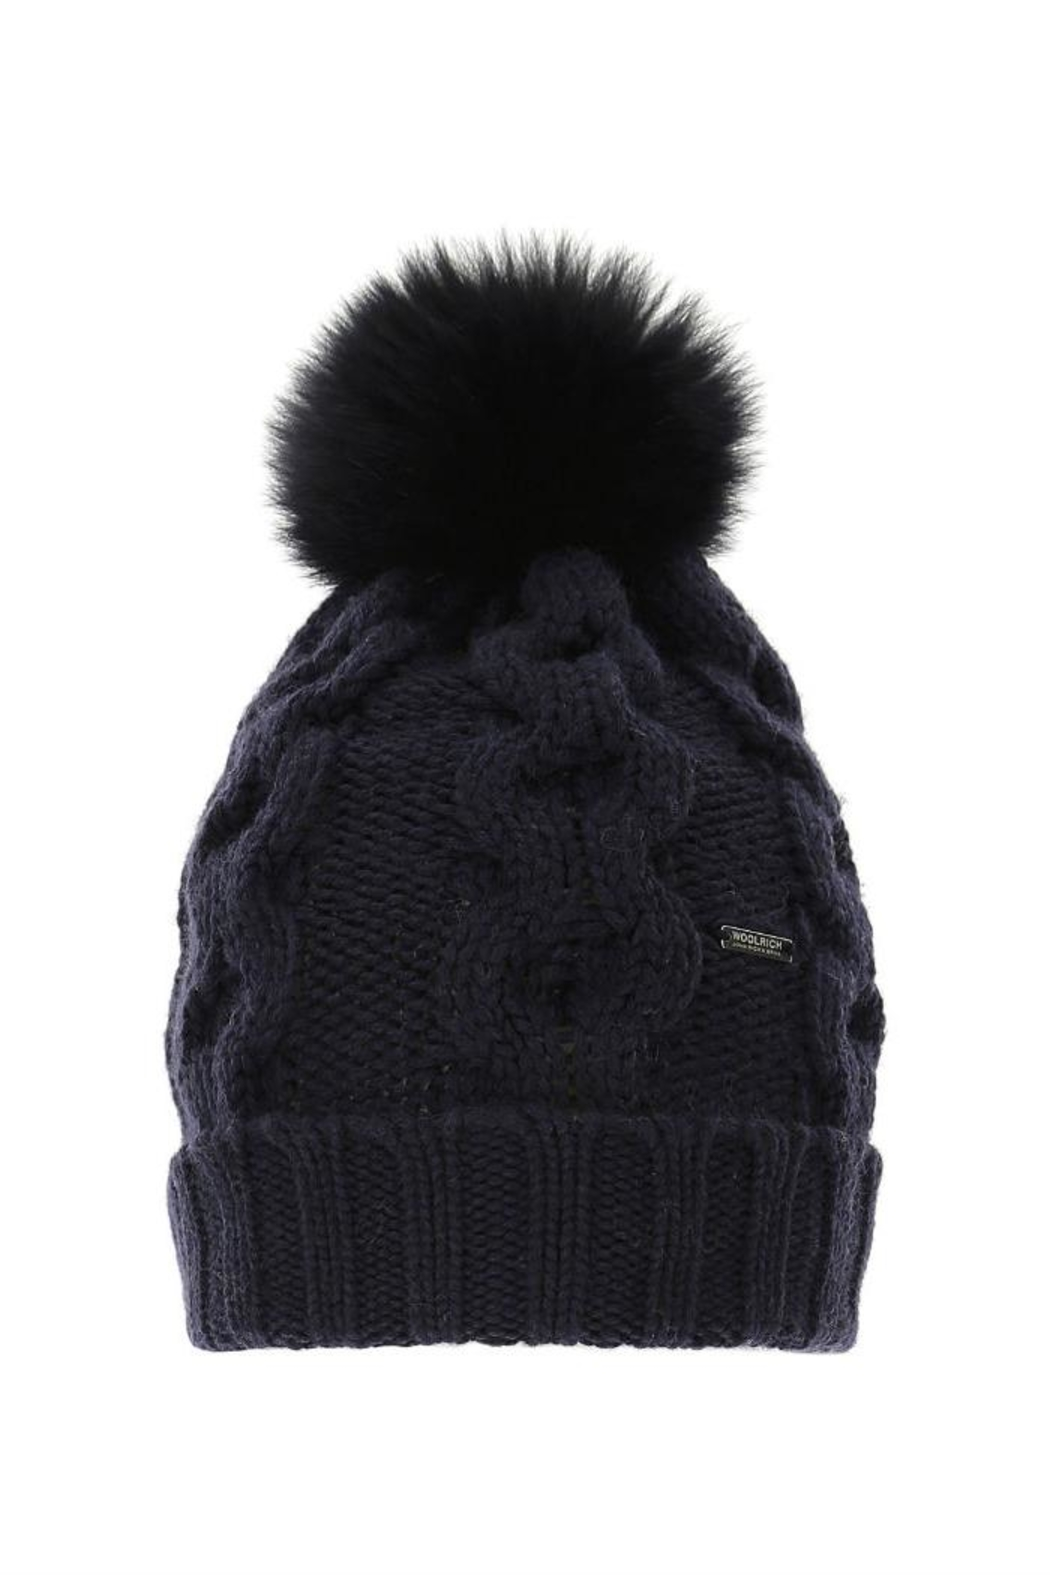 Woolrich John Rich & Bros. Serenity Knitted Hat - Main Image